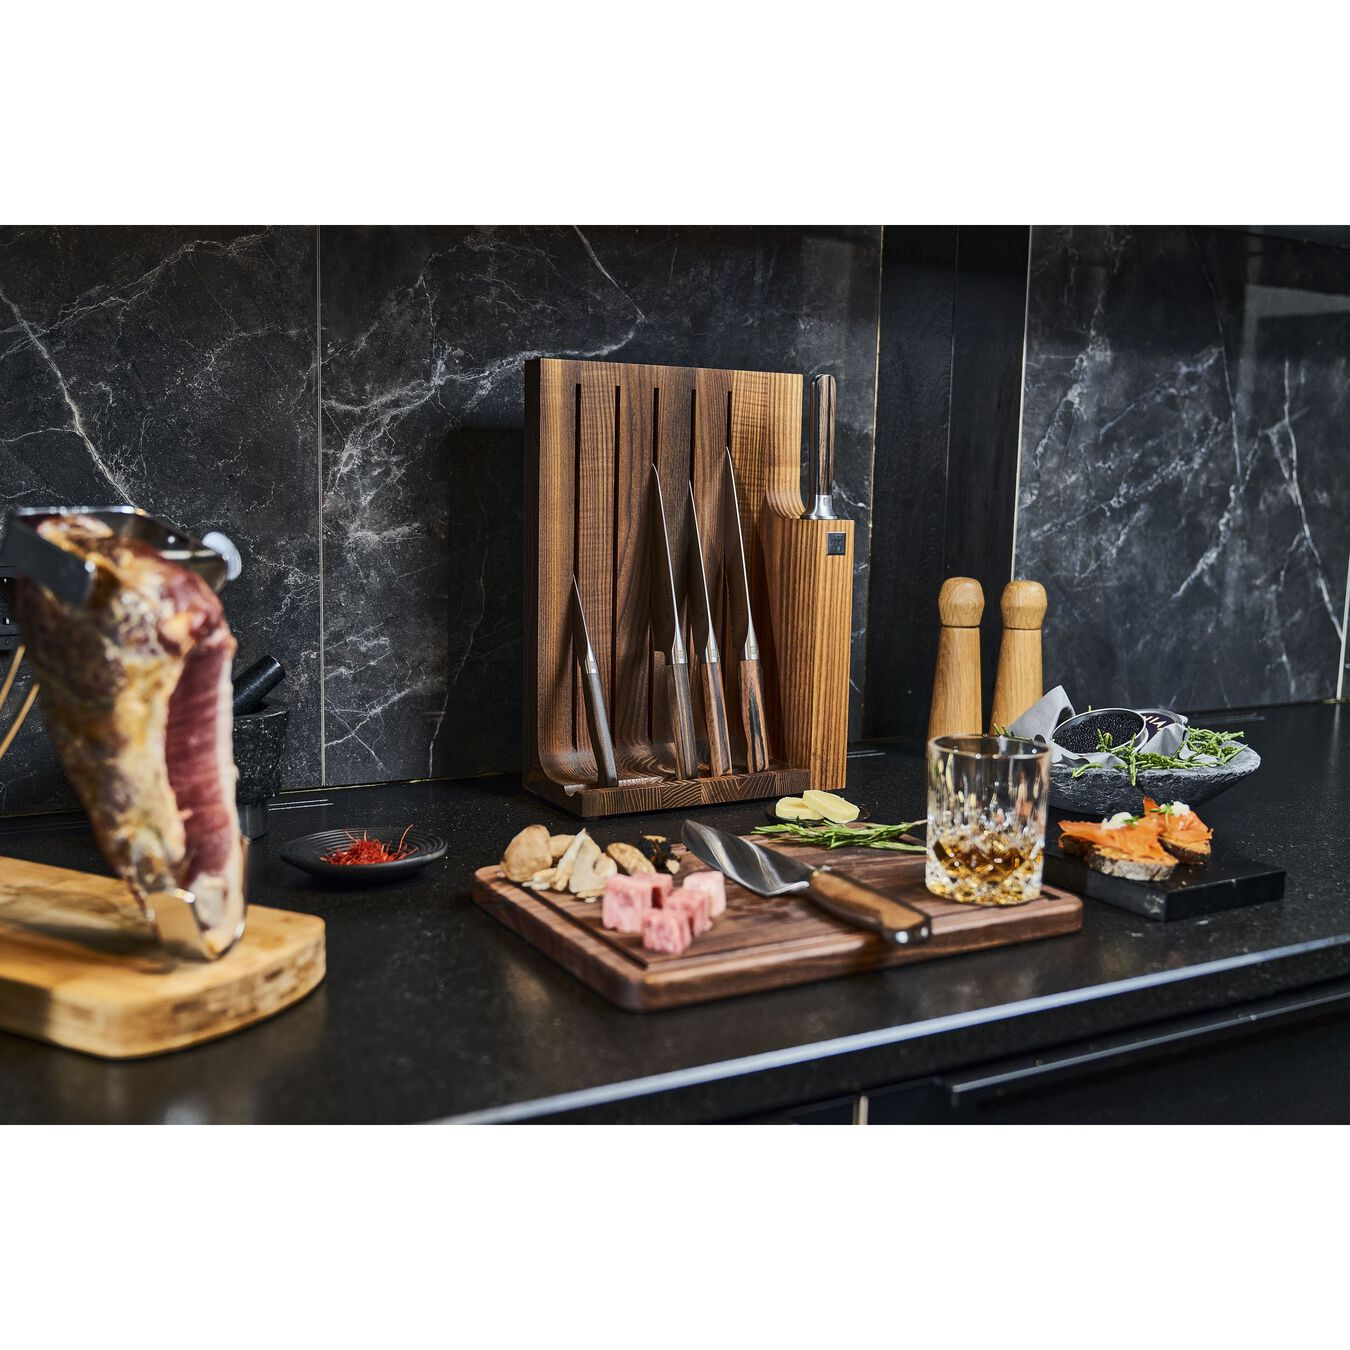 7-pc, Knife block set, brown,,large 2